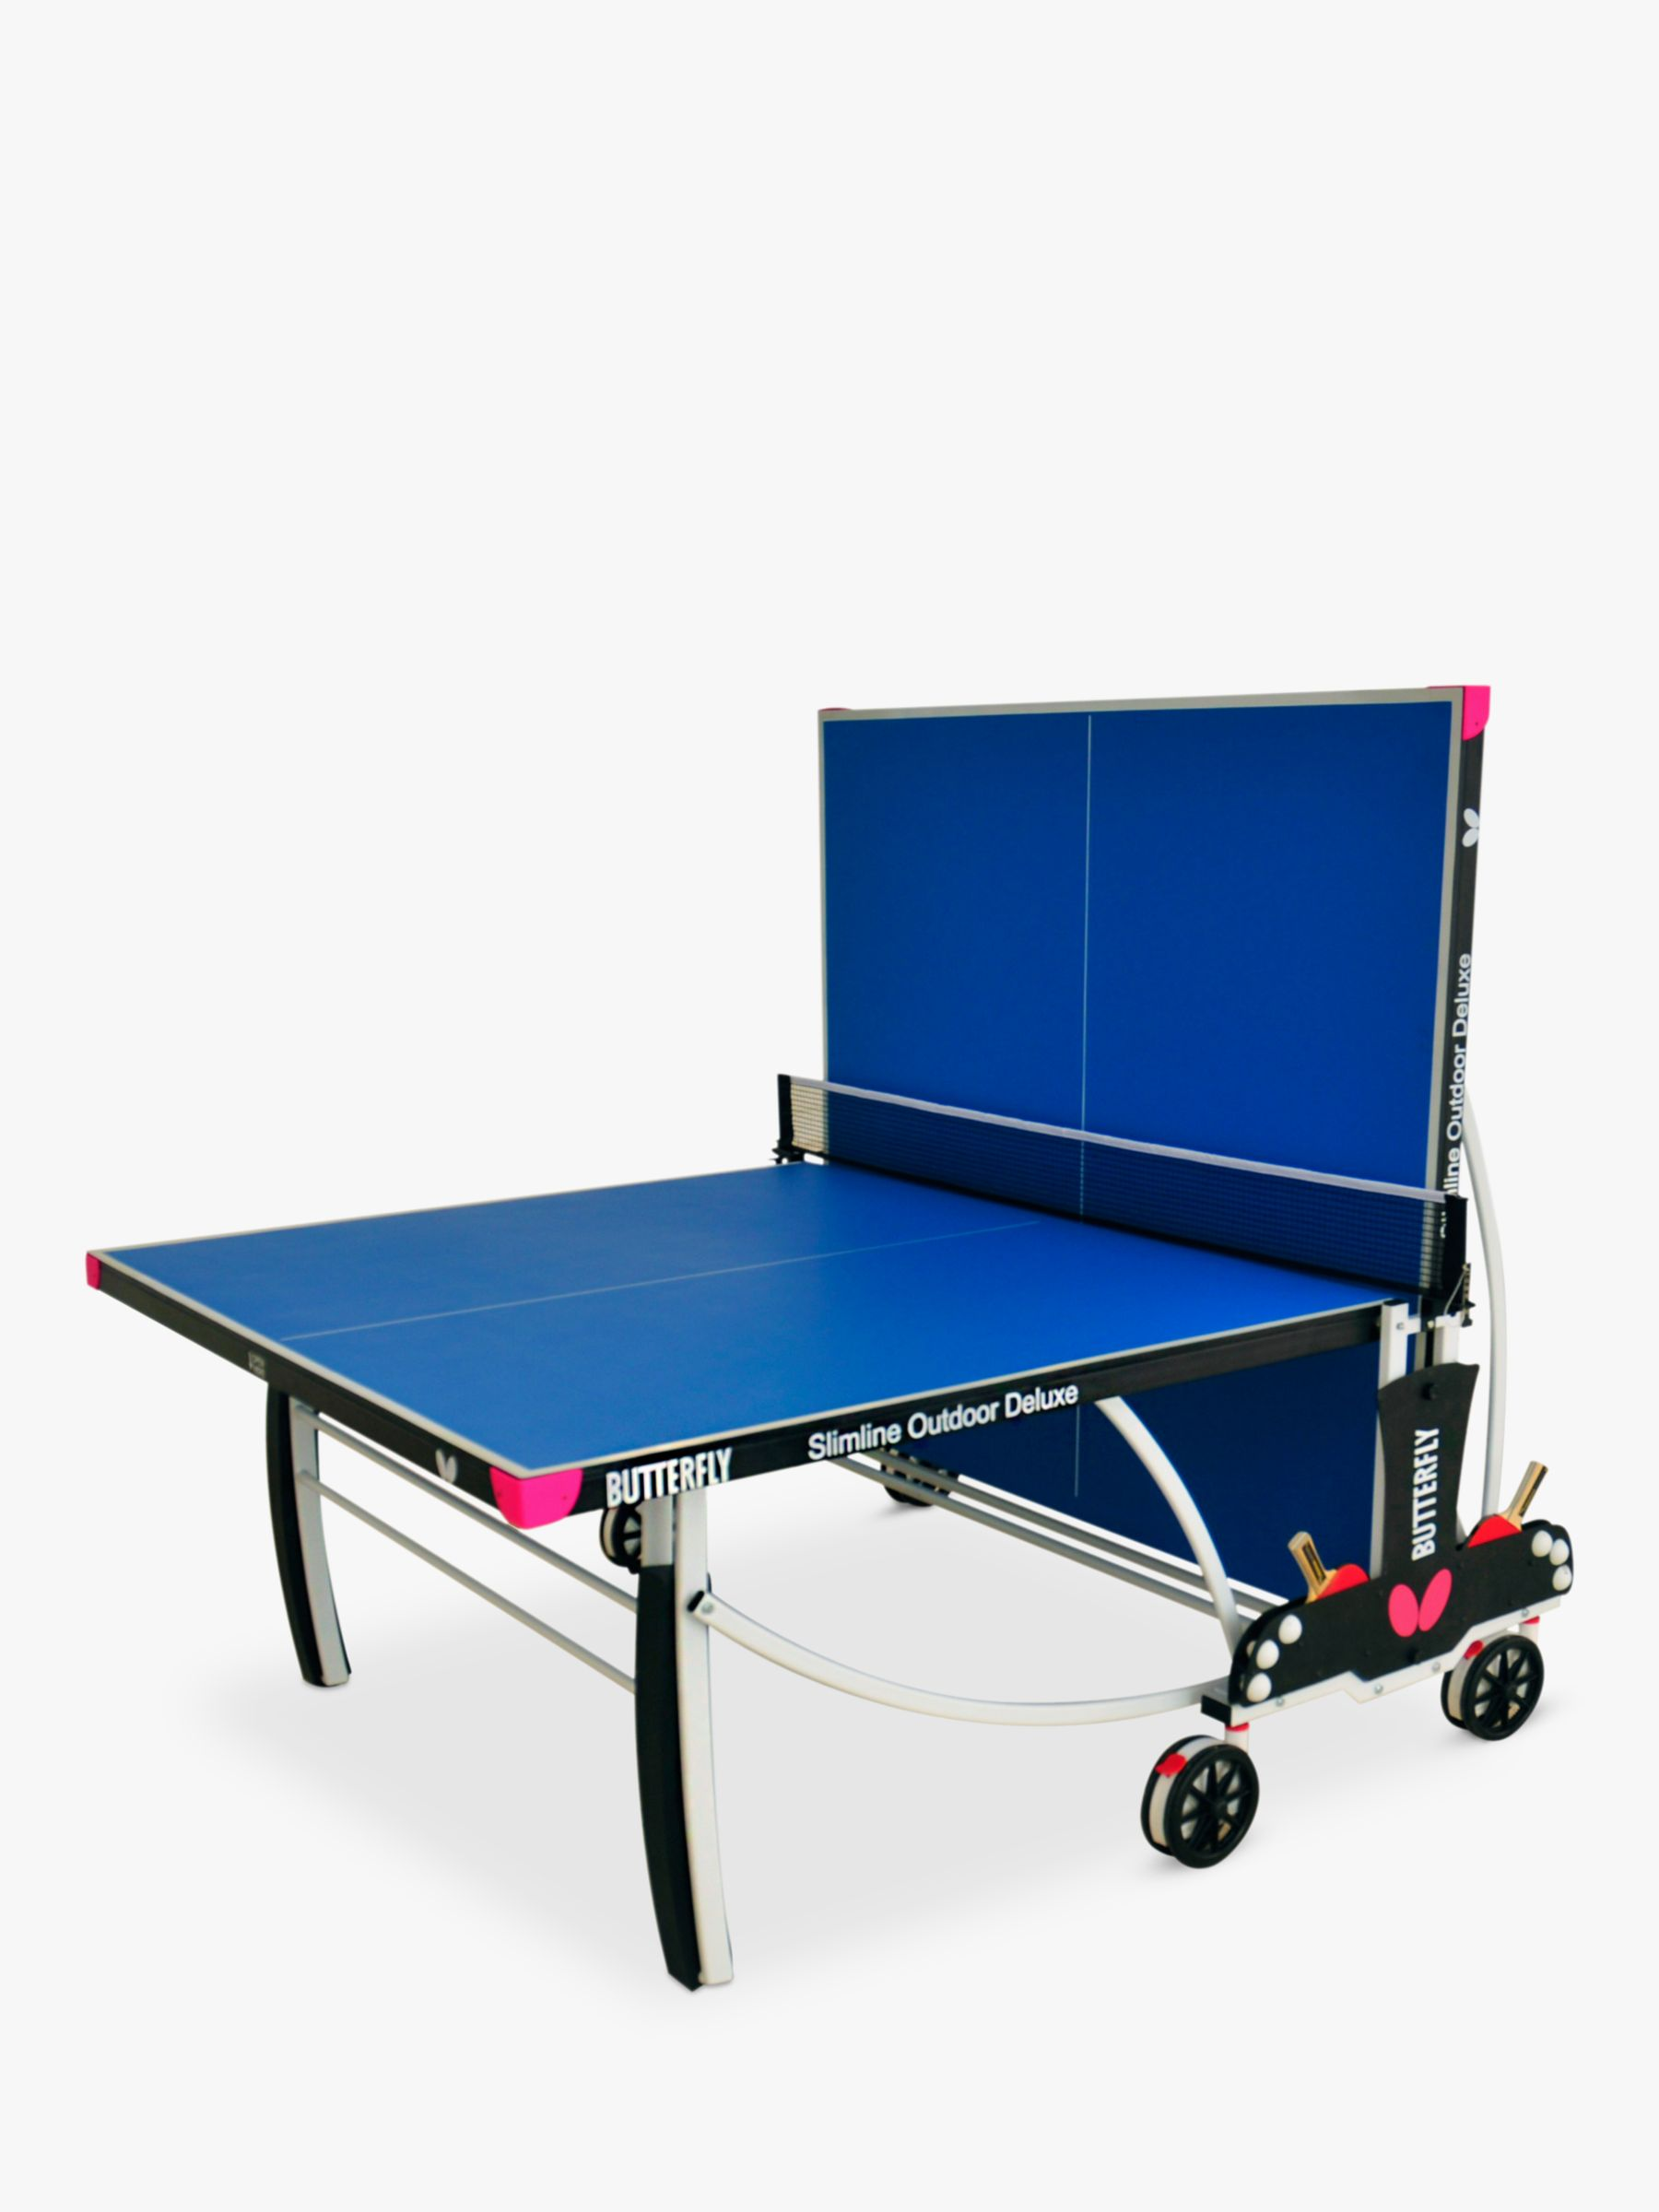 Butterfly Butterfly Slimline Deluxe Outdoor Table Tennis Table